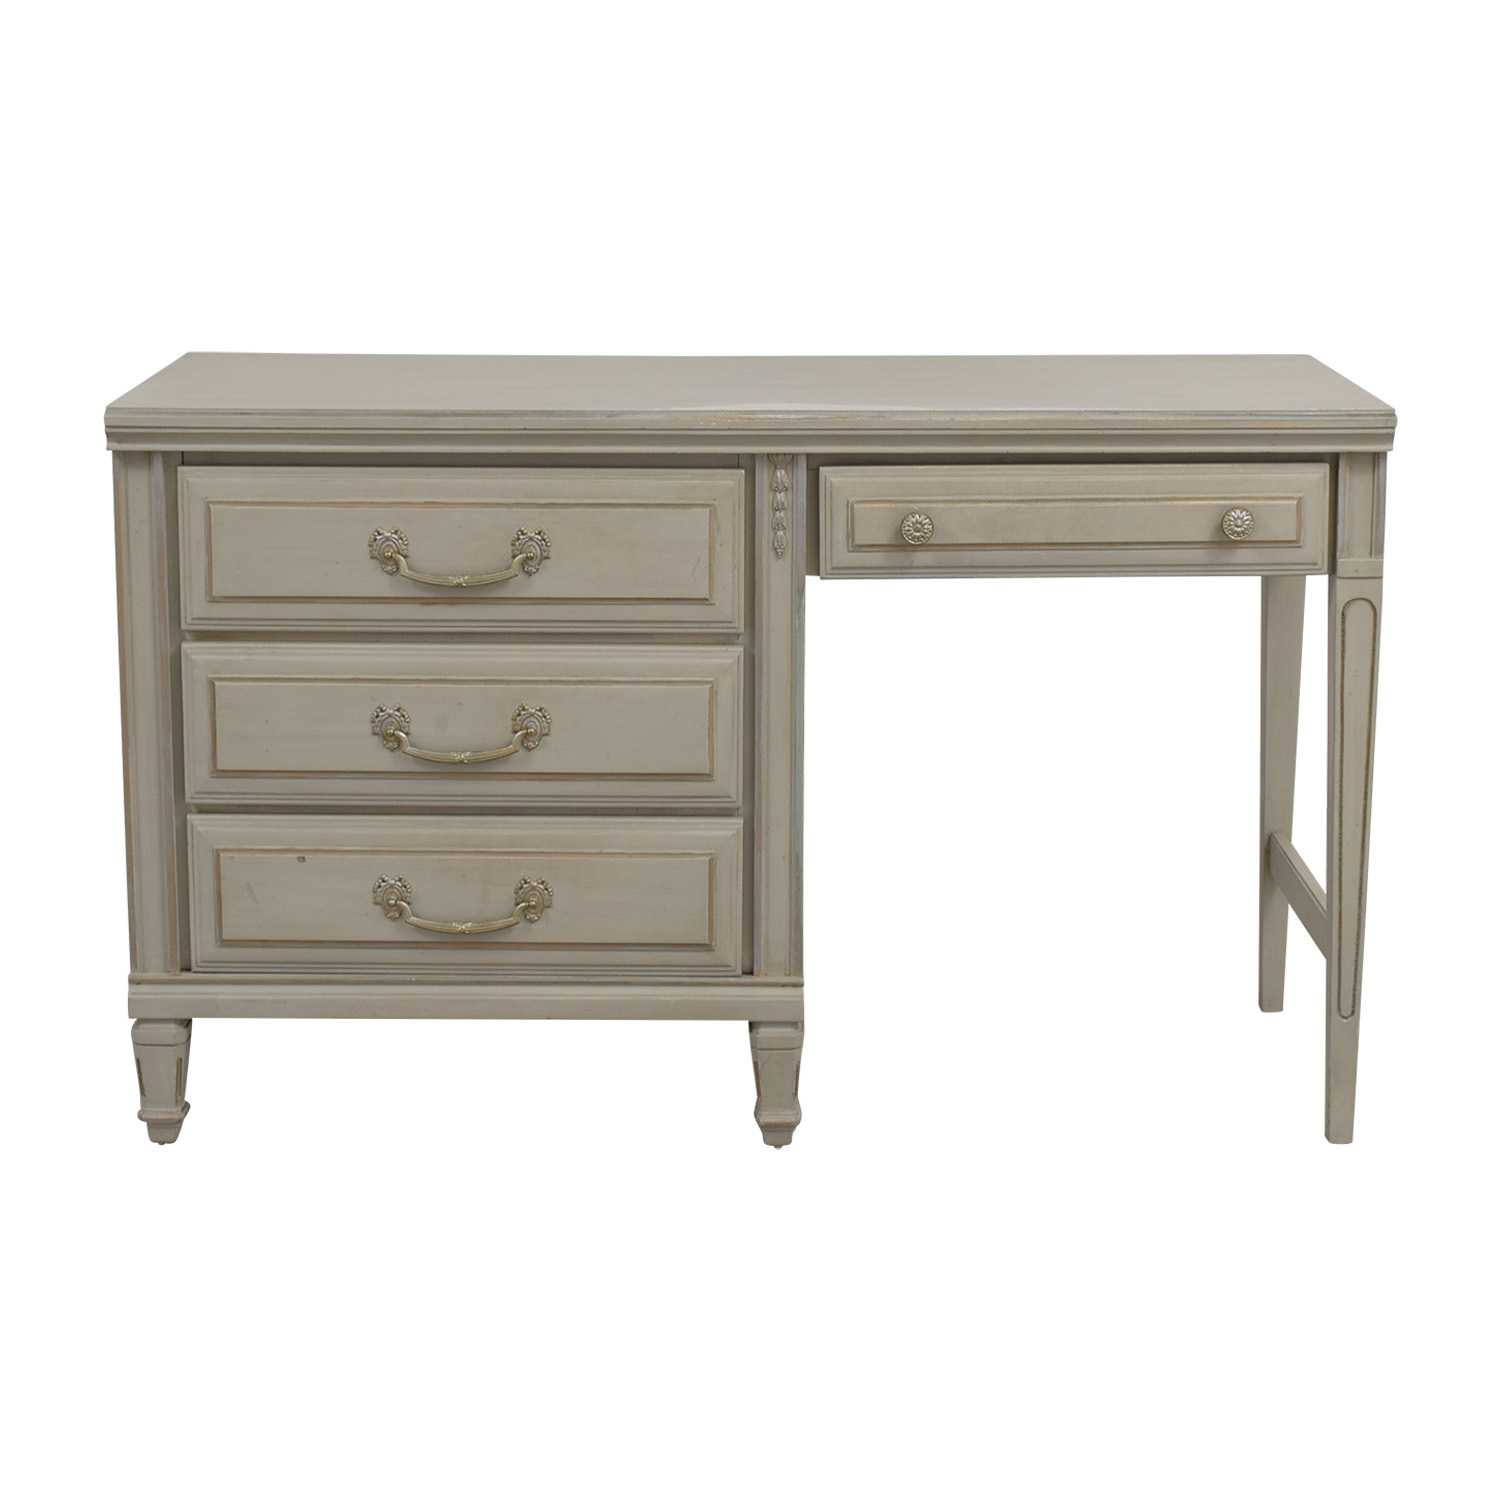 Vintage Painted Grey Four-Drawer Desk second hand